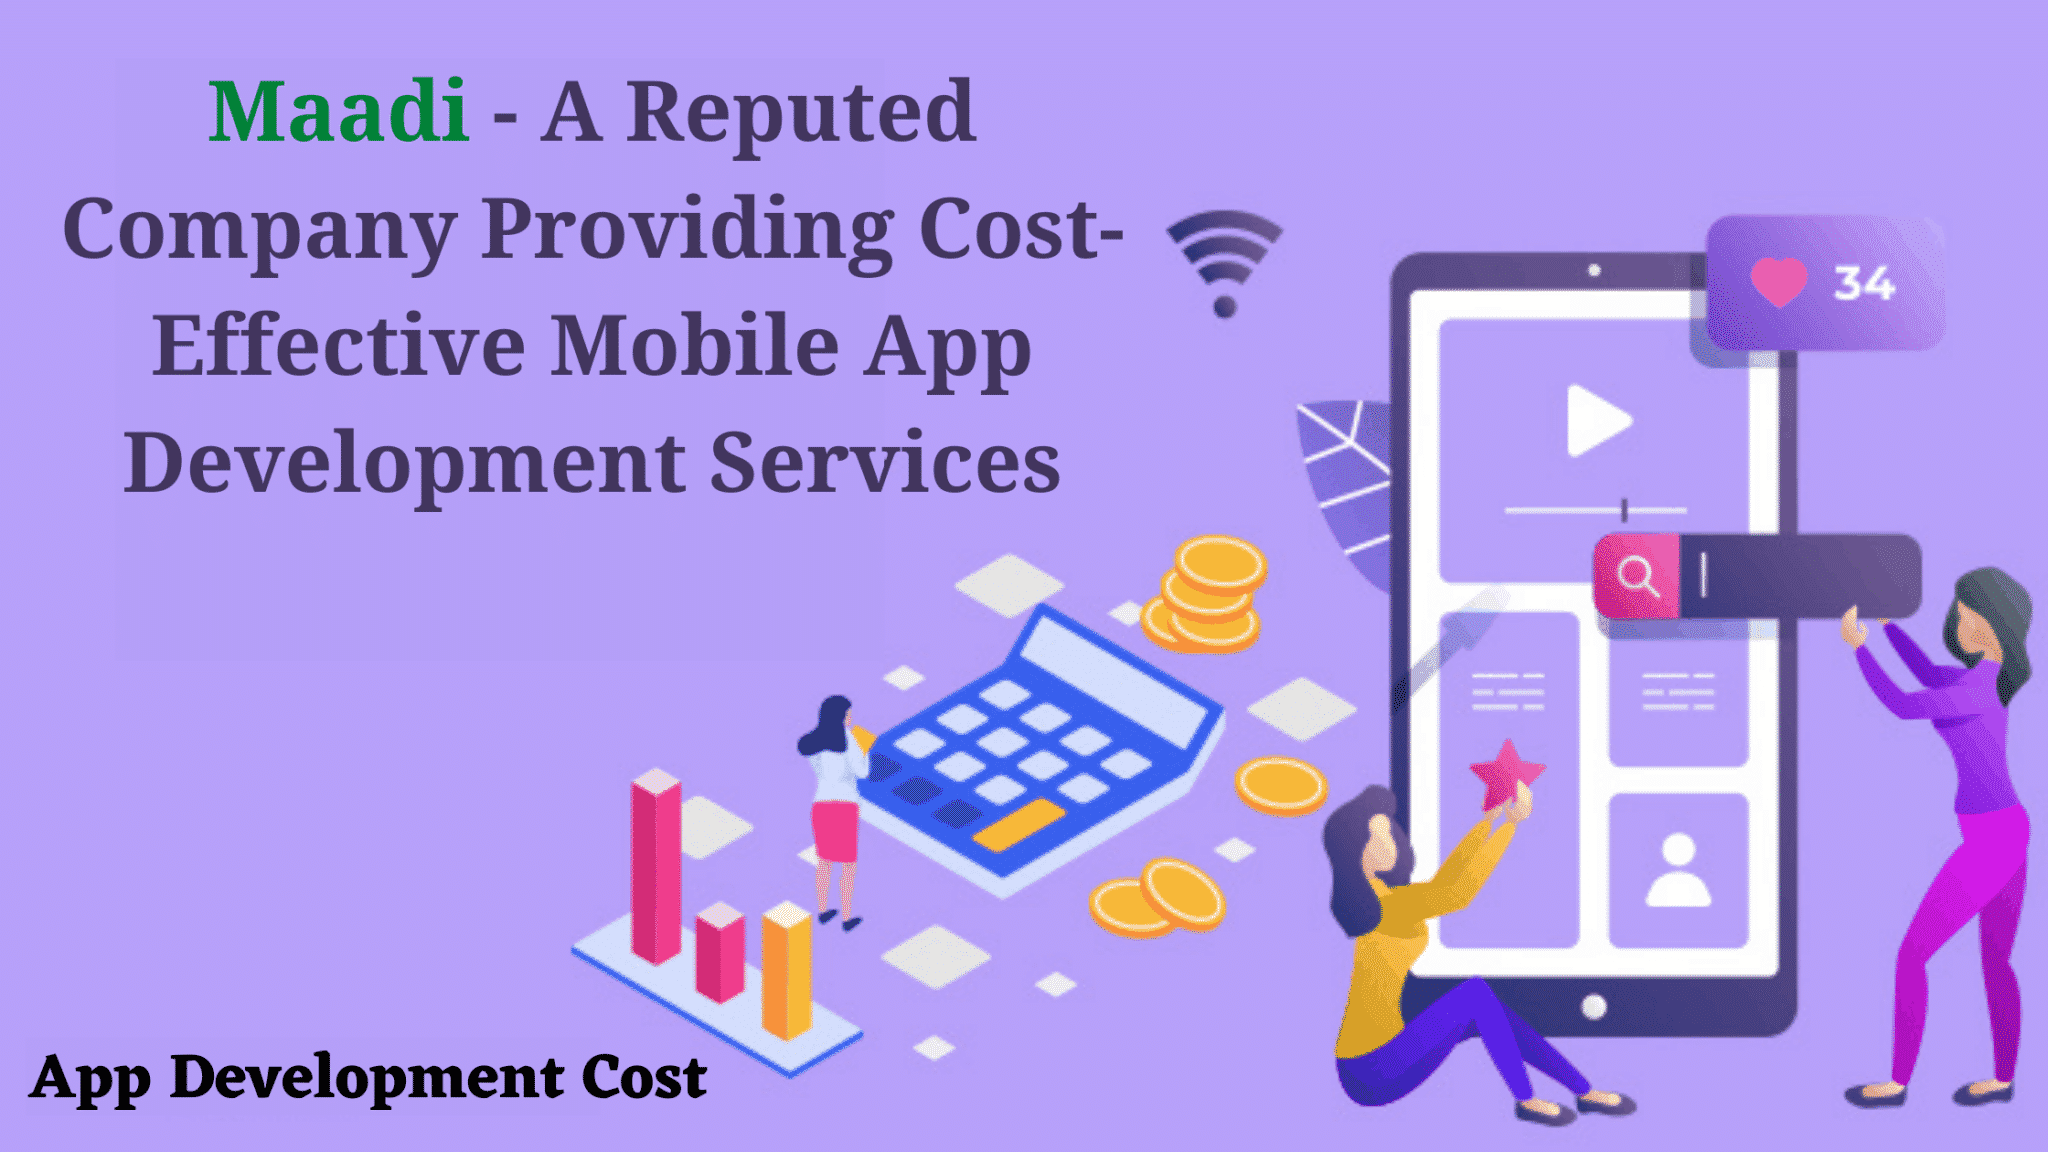 Maadi A Reputed Company Providing Cost Effective Mobile App Development Services